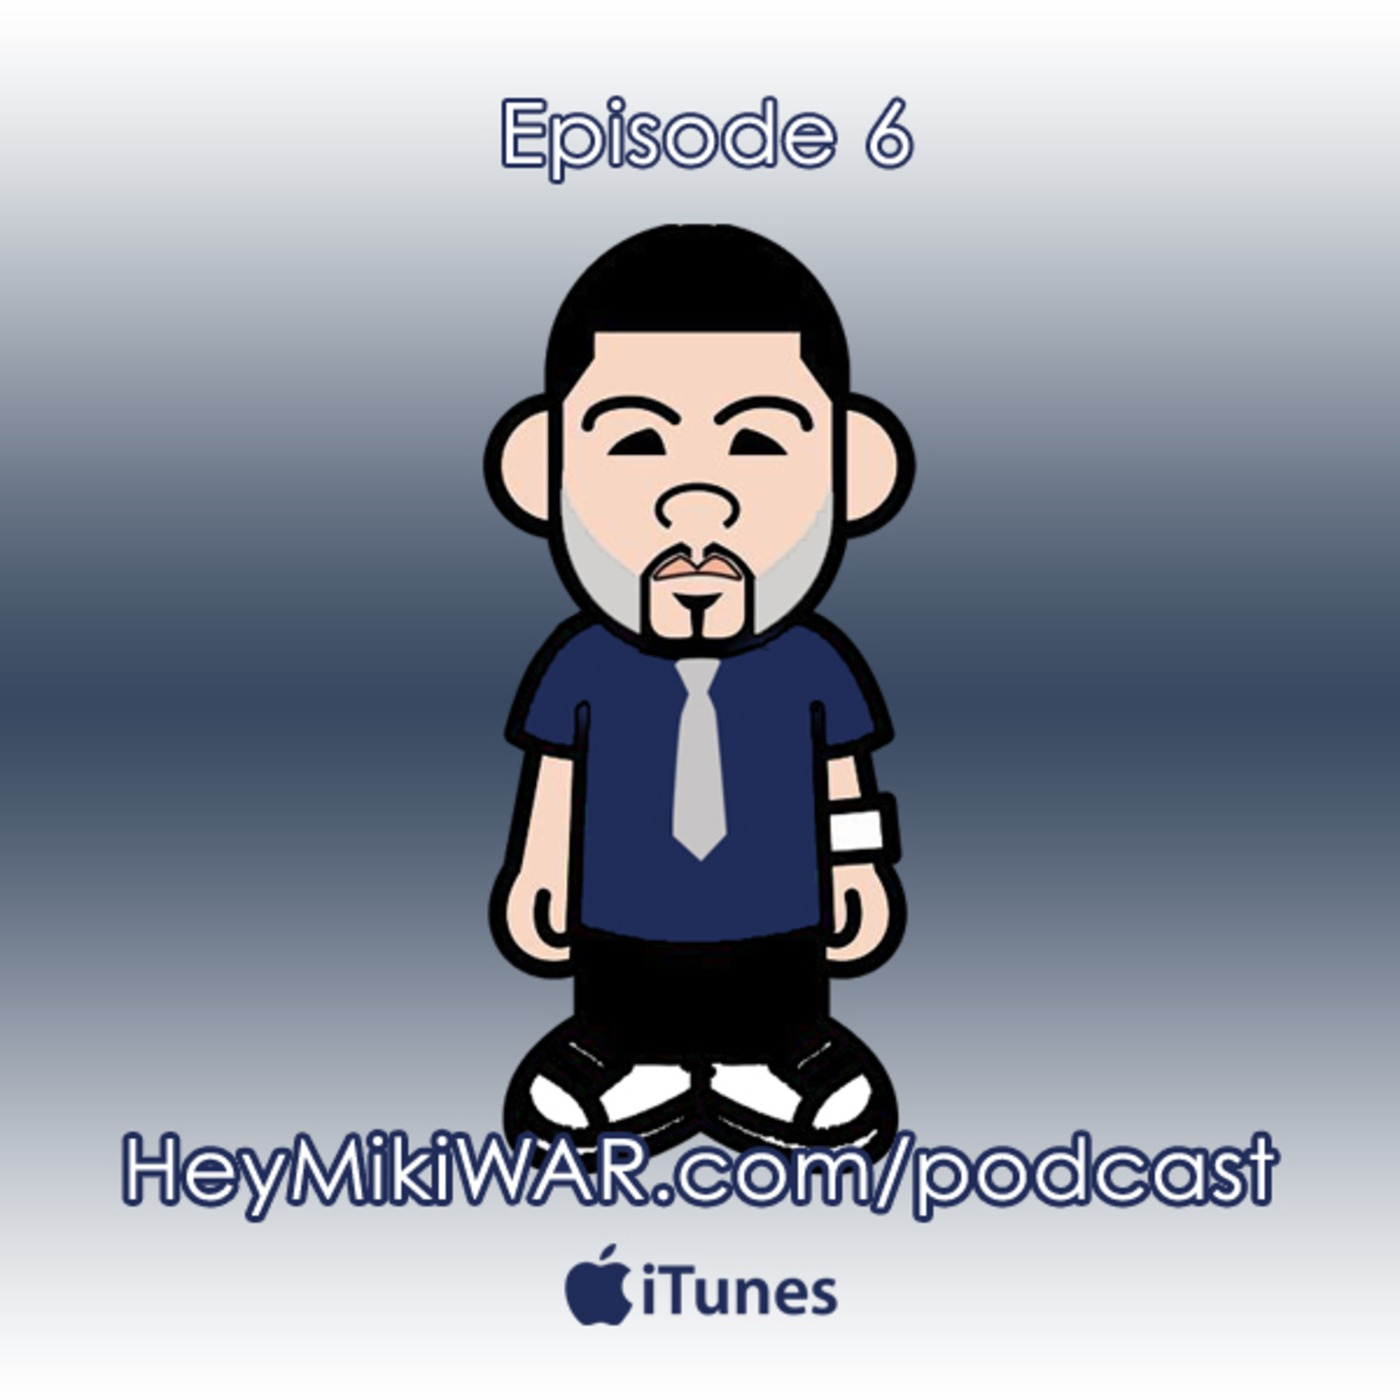 Season 2 - Episode 6 : Miki's Picks Vol 6 MikiWAR podcast